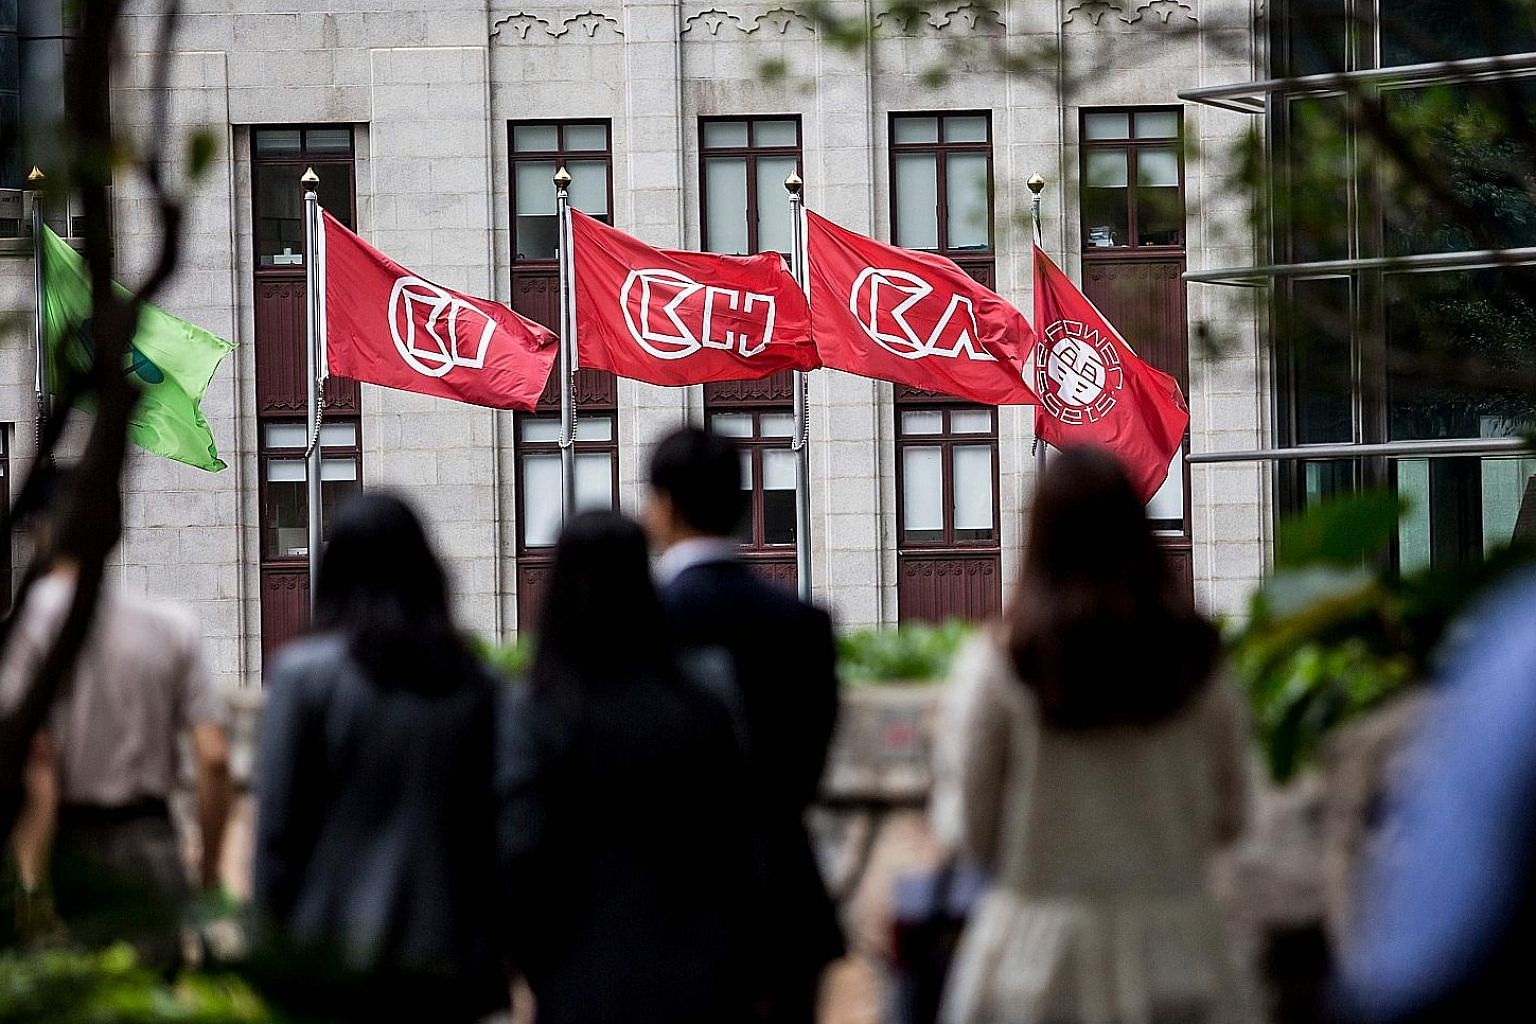 GMT Research says that by deeming a portion of its assets as held for sale, Hong Kong billionaire Li Ka Shing's CK Hutchison Holdings (flags of which are seen above, outside the company's headquarters in Hong Kong) may be hiding HK$57.7 billion (S$10